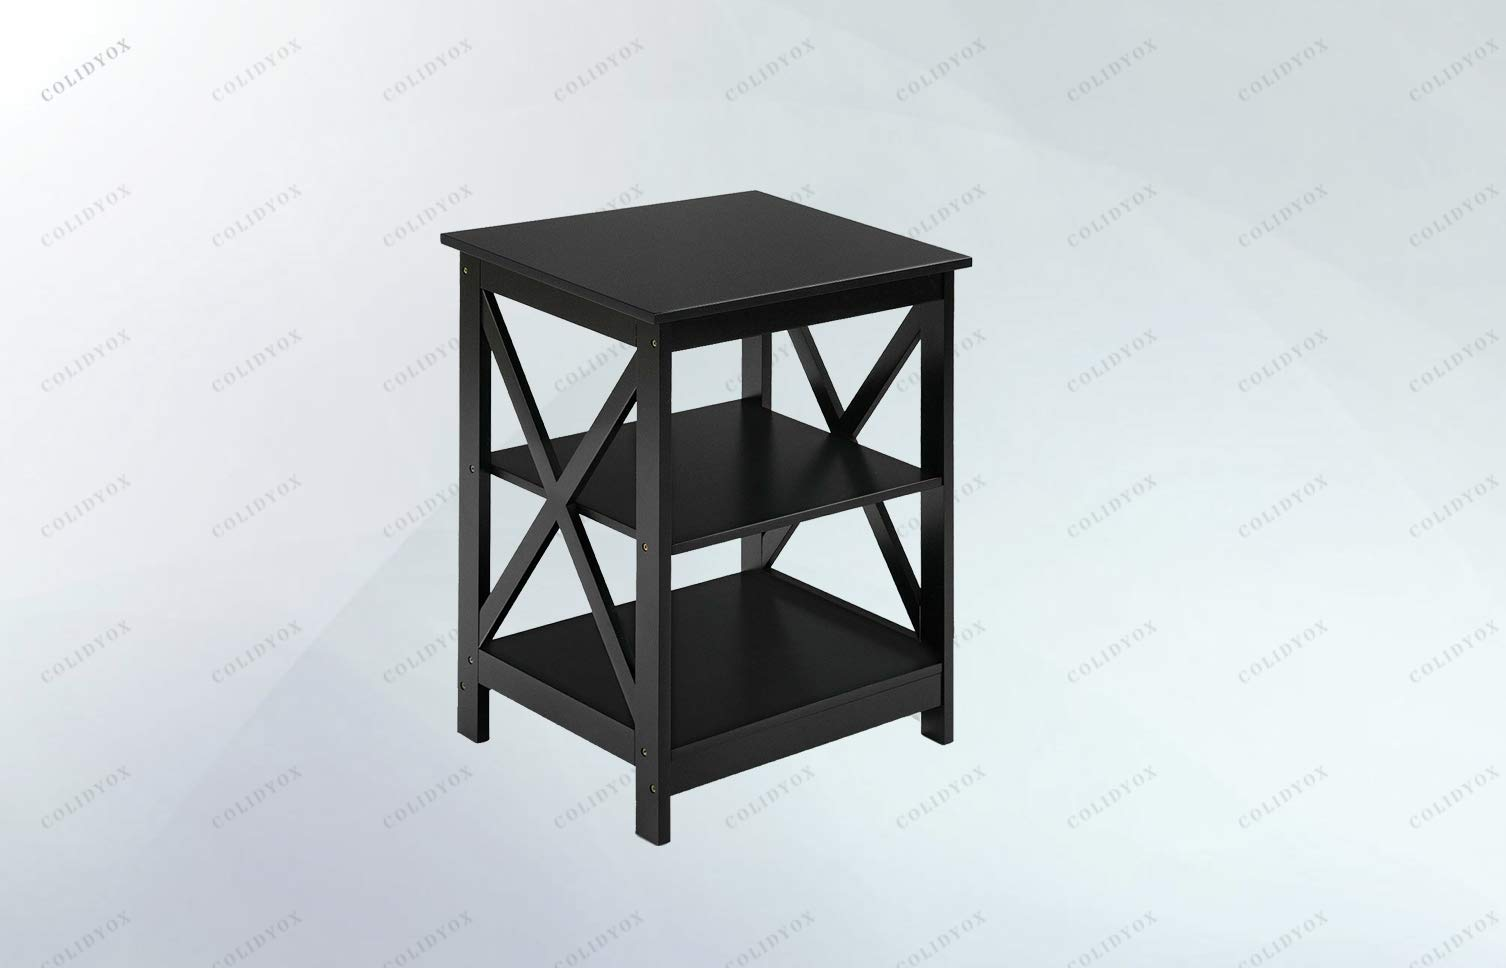 COLIDYOX>3-Tier Nightstand End Table Storage Display Shelf Living Room Furniture,Neat& Modern Design with Elegant Black Finish, Classic Double X Stretcher Design.